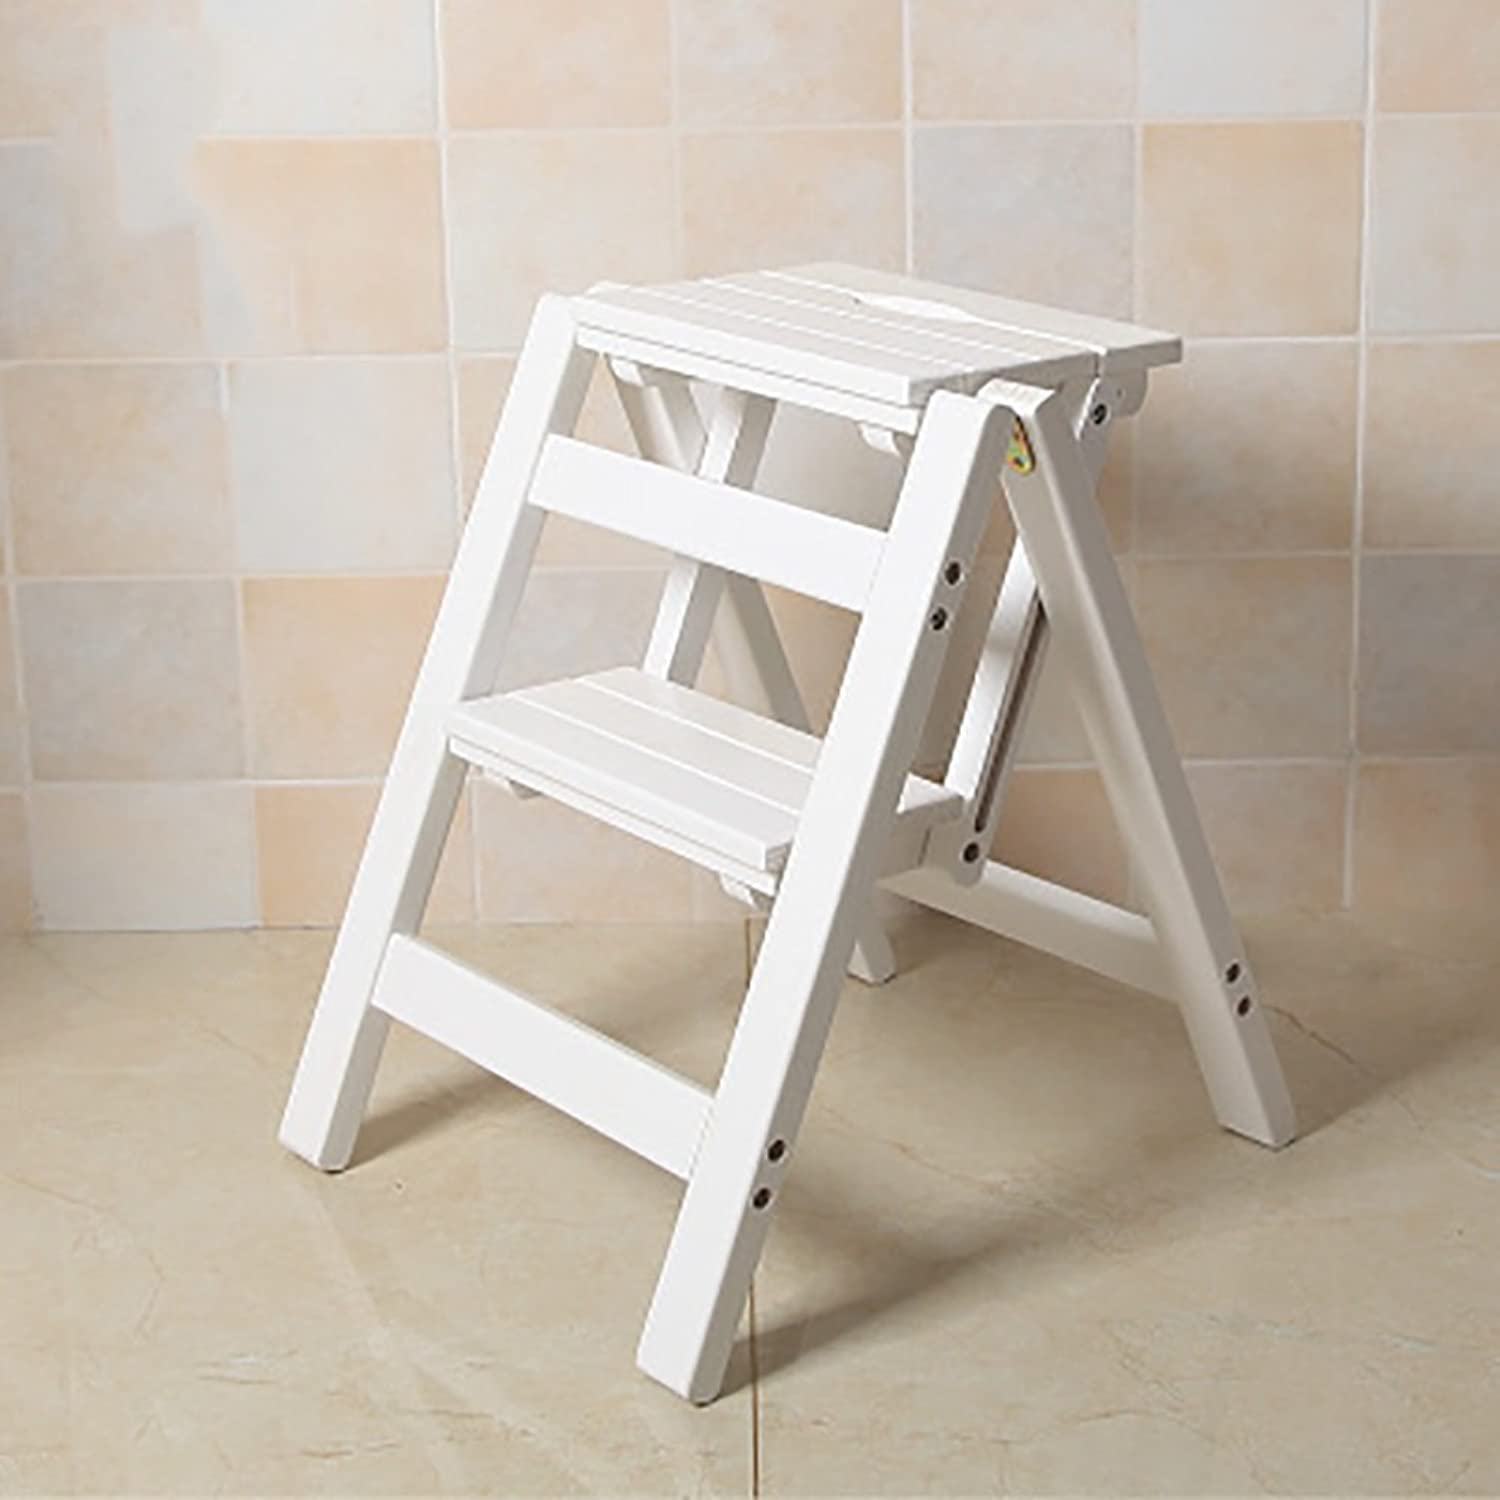 GAIXIA-Ladder stool 2-Step Folding Wooden Step Stool, Portable Step Ladder Ladder Multi-Function Household Kitchen Bathroom Office Furniture Ladder Chair (color   White)